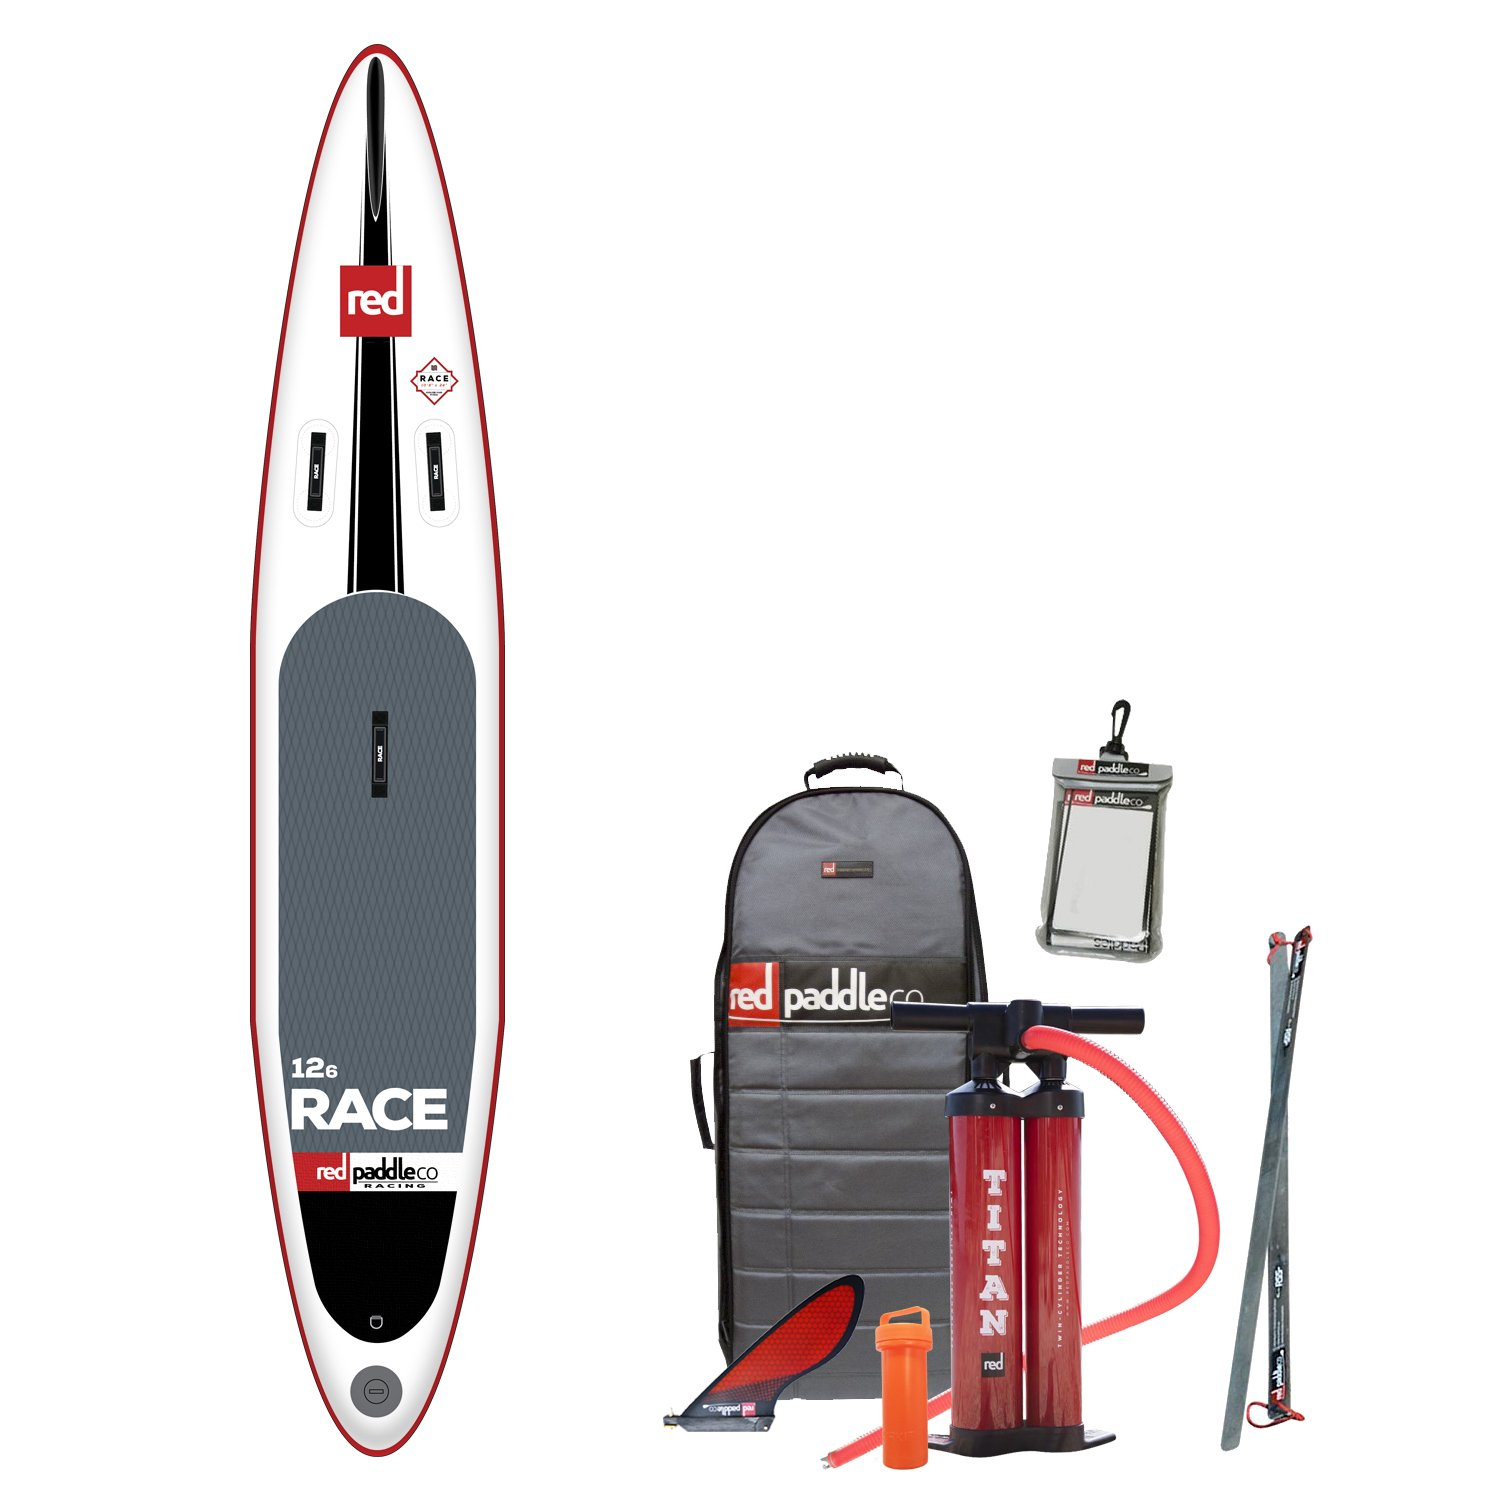 2017 Red Paddle Co 126 Race Inflatable Stand Up Paddle Board + Bag Pump Paddle & LEASH: Amazon.es: Deportes y aire libre